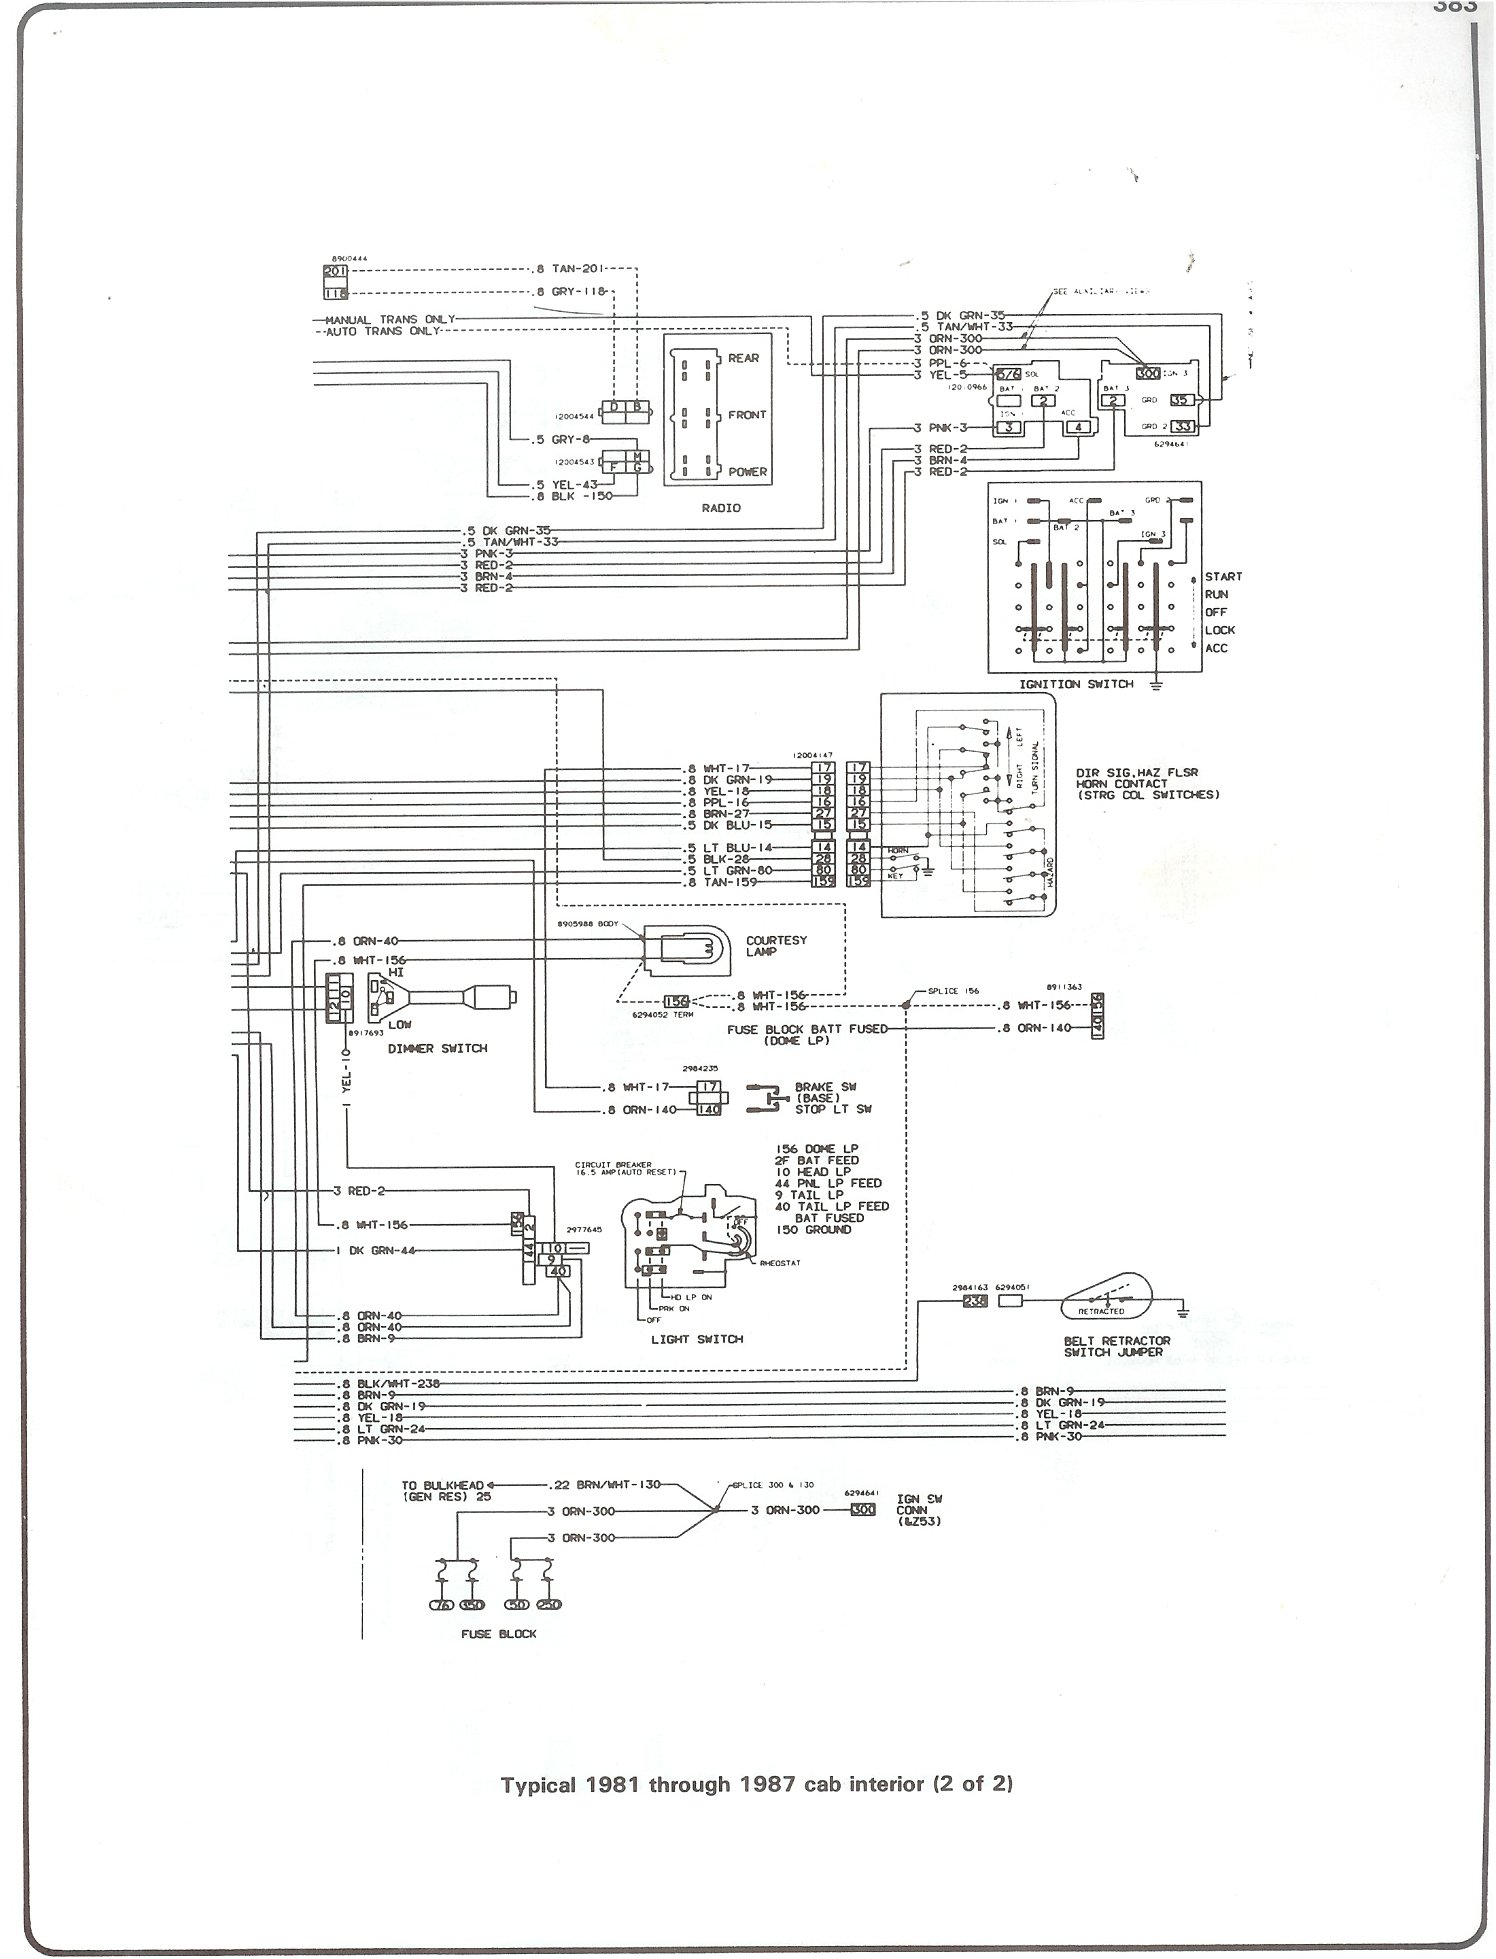 81 87_cab_inter_pg2 electrical diagrams chevy only page 2 truck forum  at alyssarenee.co